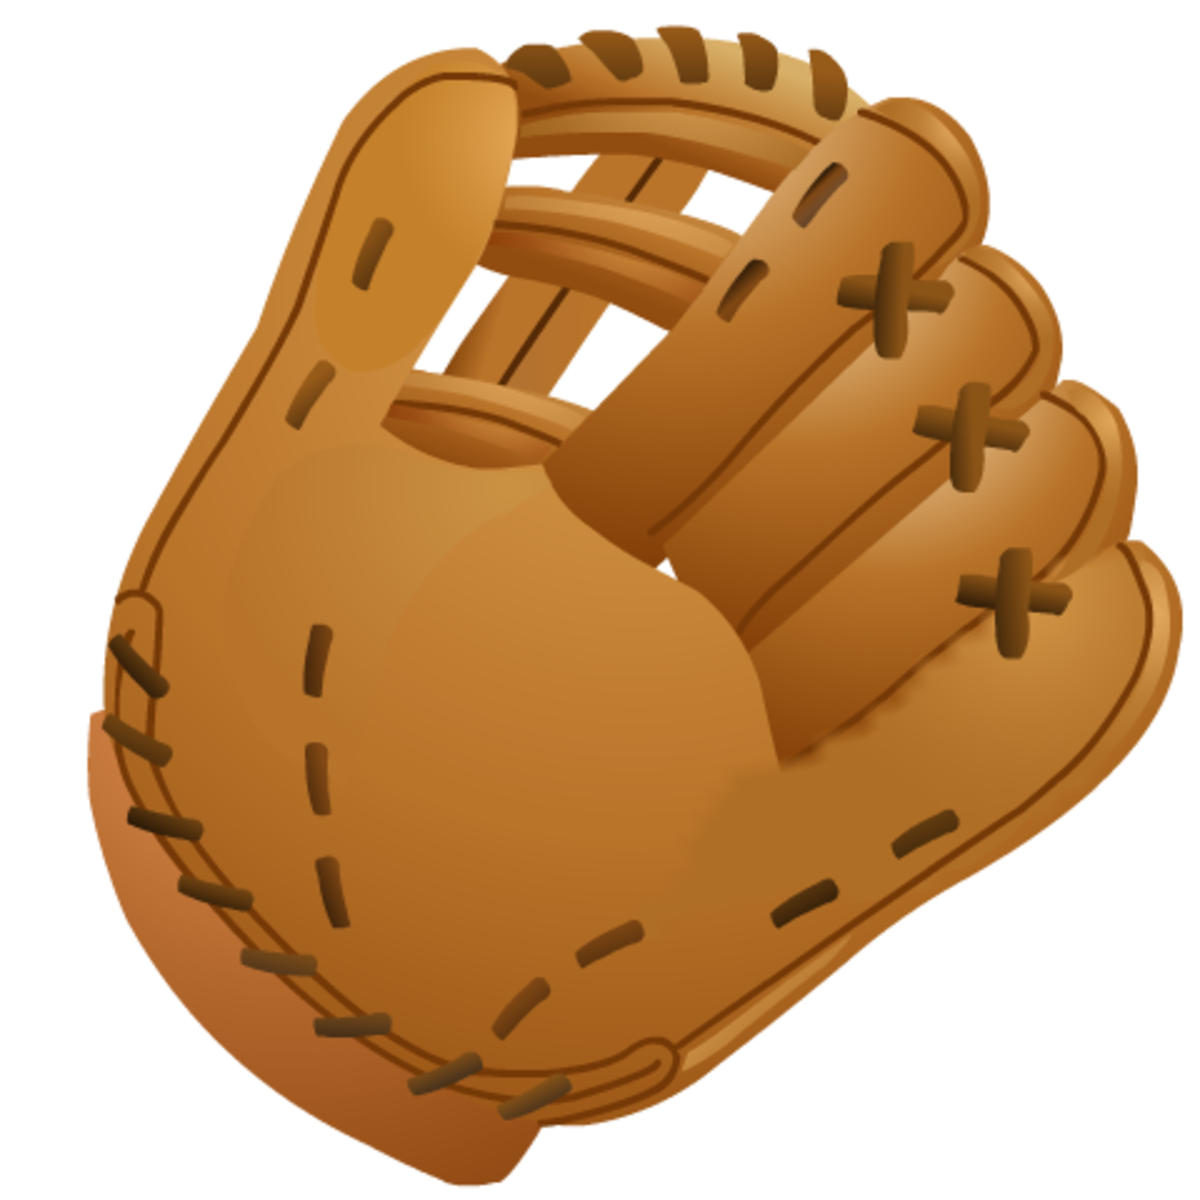 Baseball images: plain baseball glove